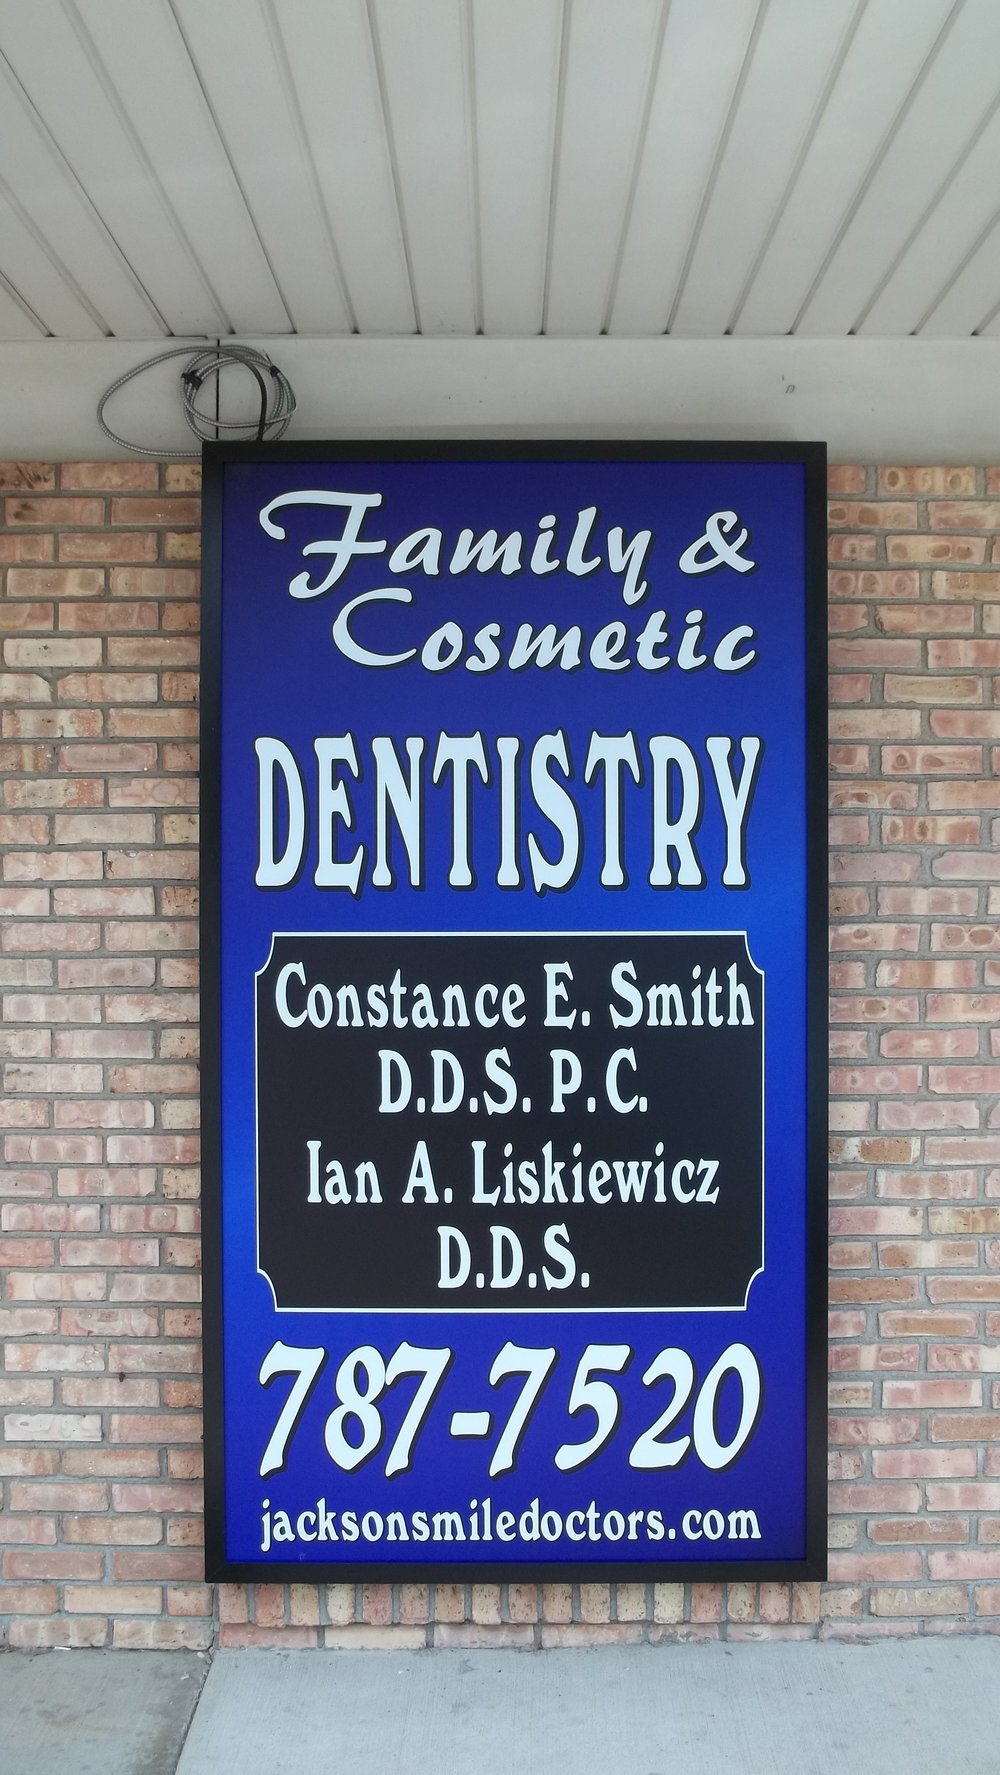 Dr. Smith Dentistry.JPG